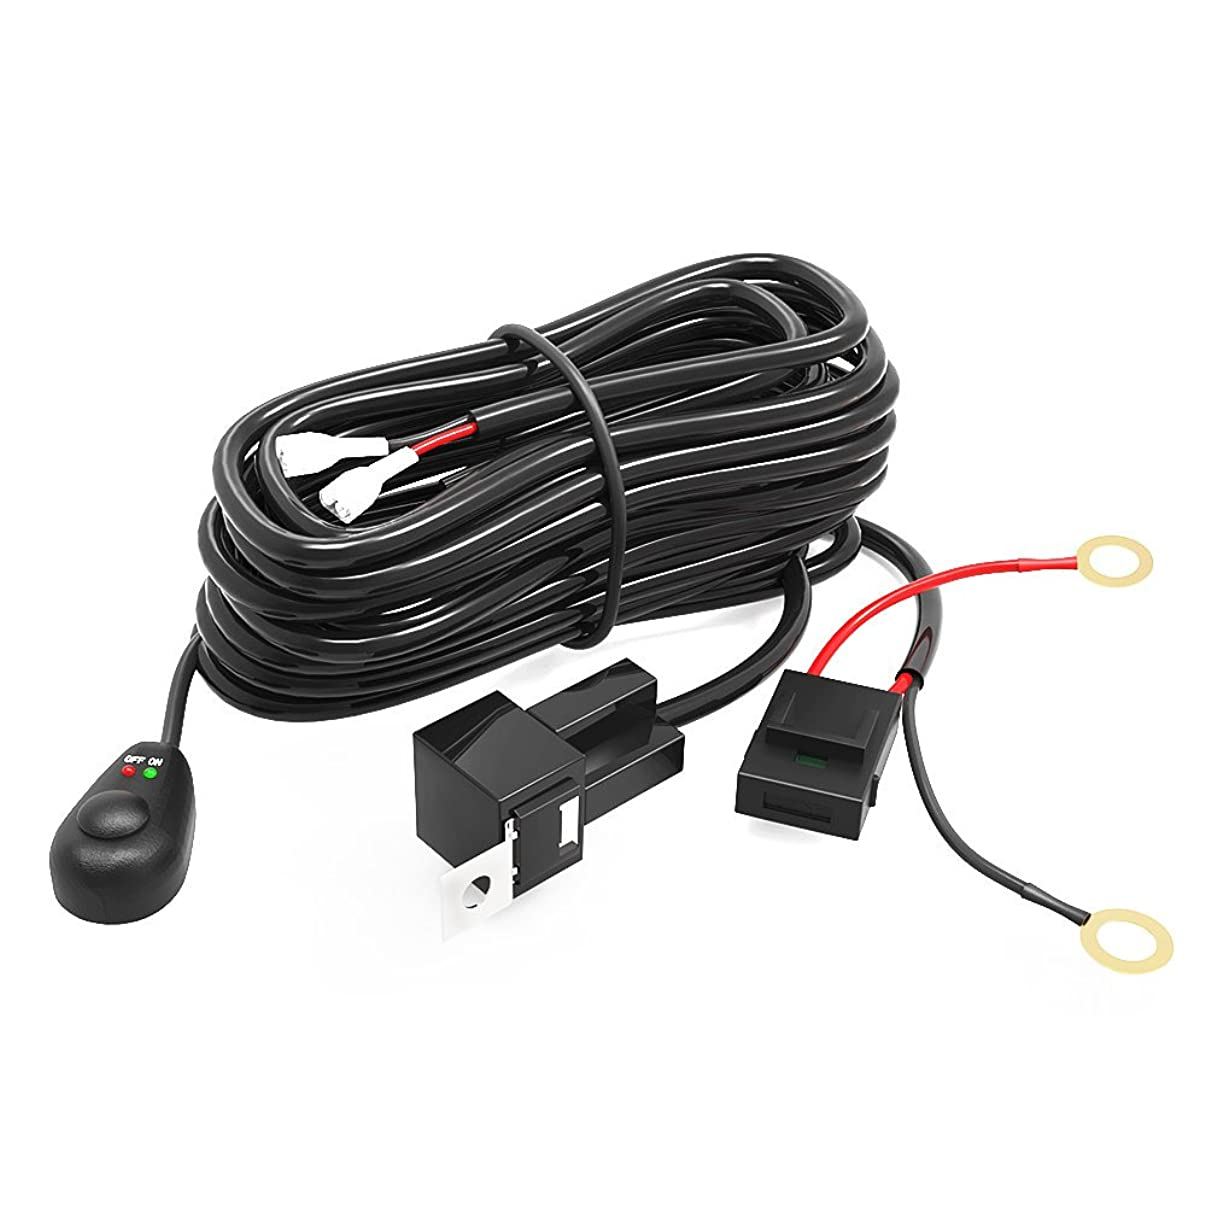 LED Light Bar YITAMOTOR Offroad Driving Light Bar Wiring Harness with Fuse Relay ON/OFF Switch compatible for ATV Fog Light Led Spotlights Up to 180W 12V/40A 8ft